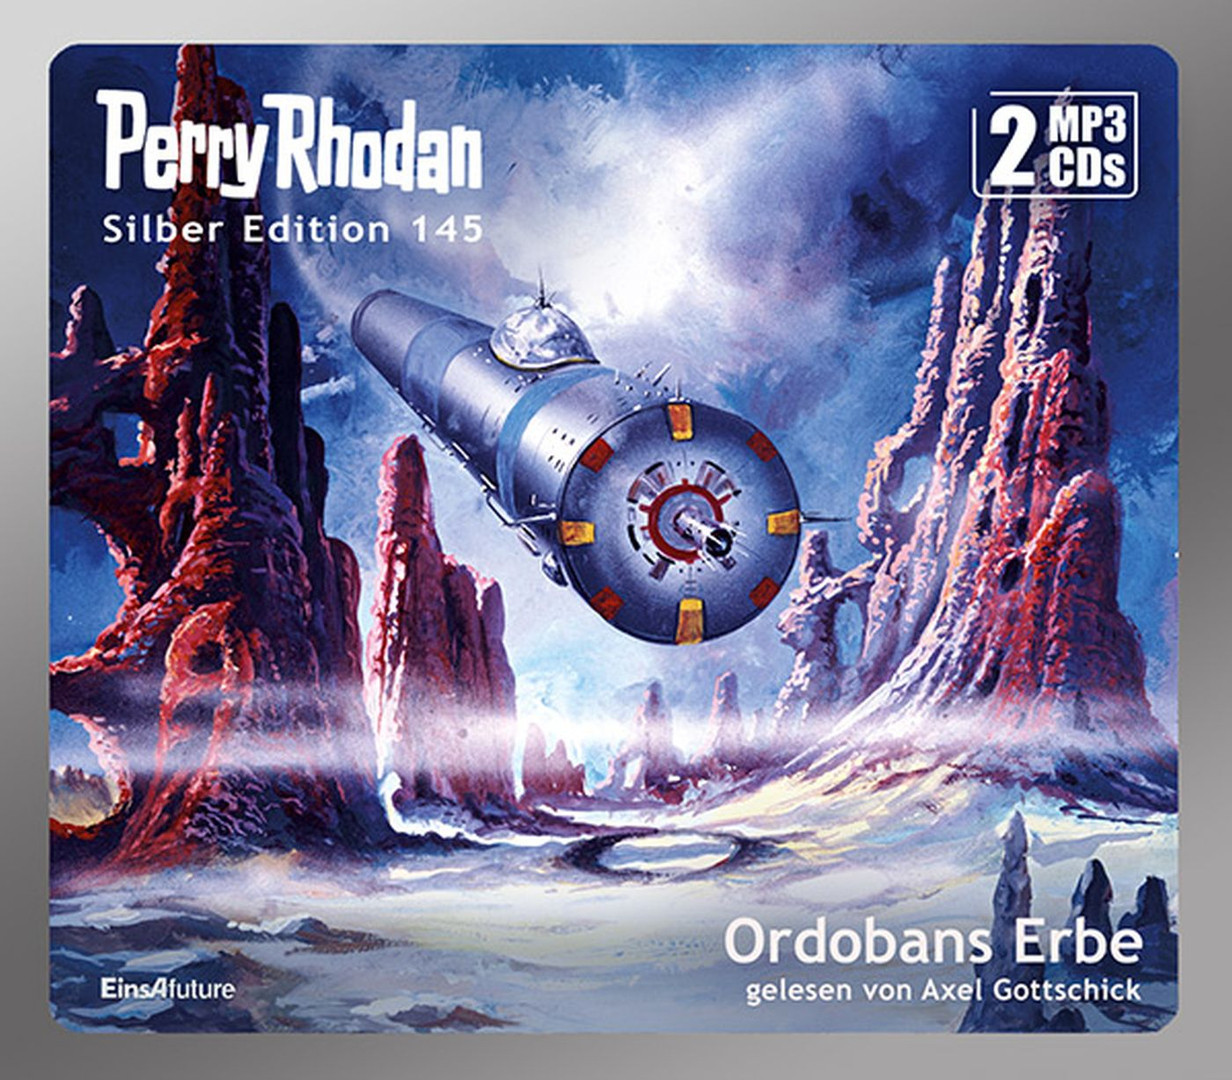 Perry Rhodan Silber Edition 145: Ordobans Erbe (2 mp3-CDs)